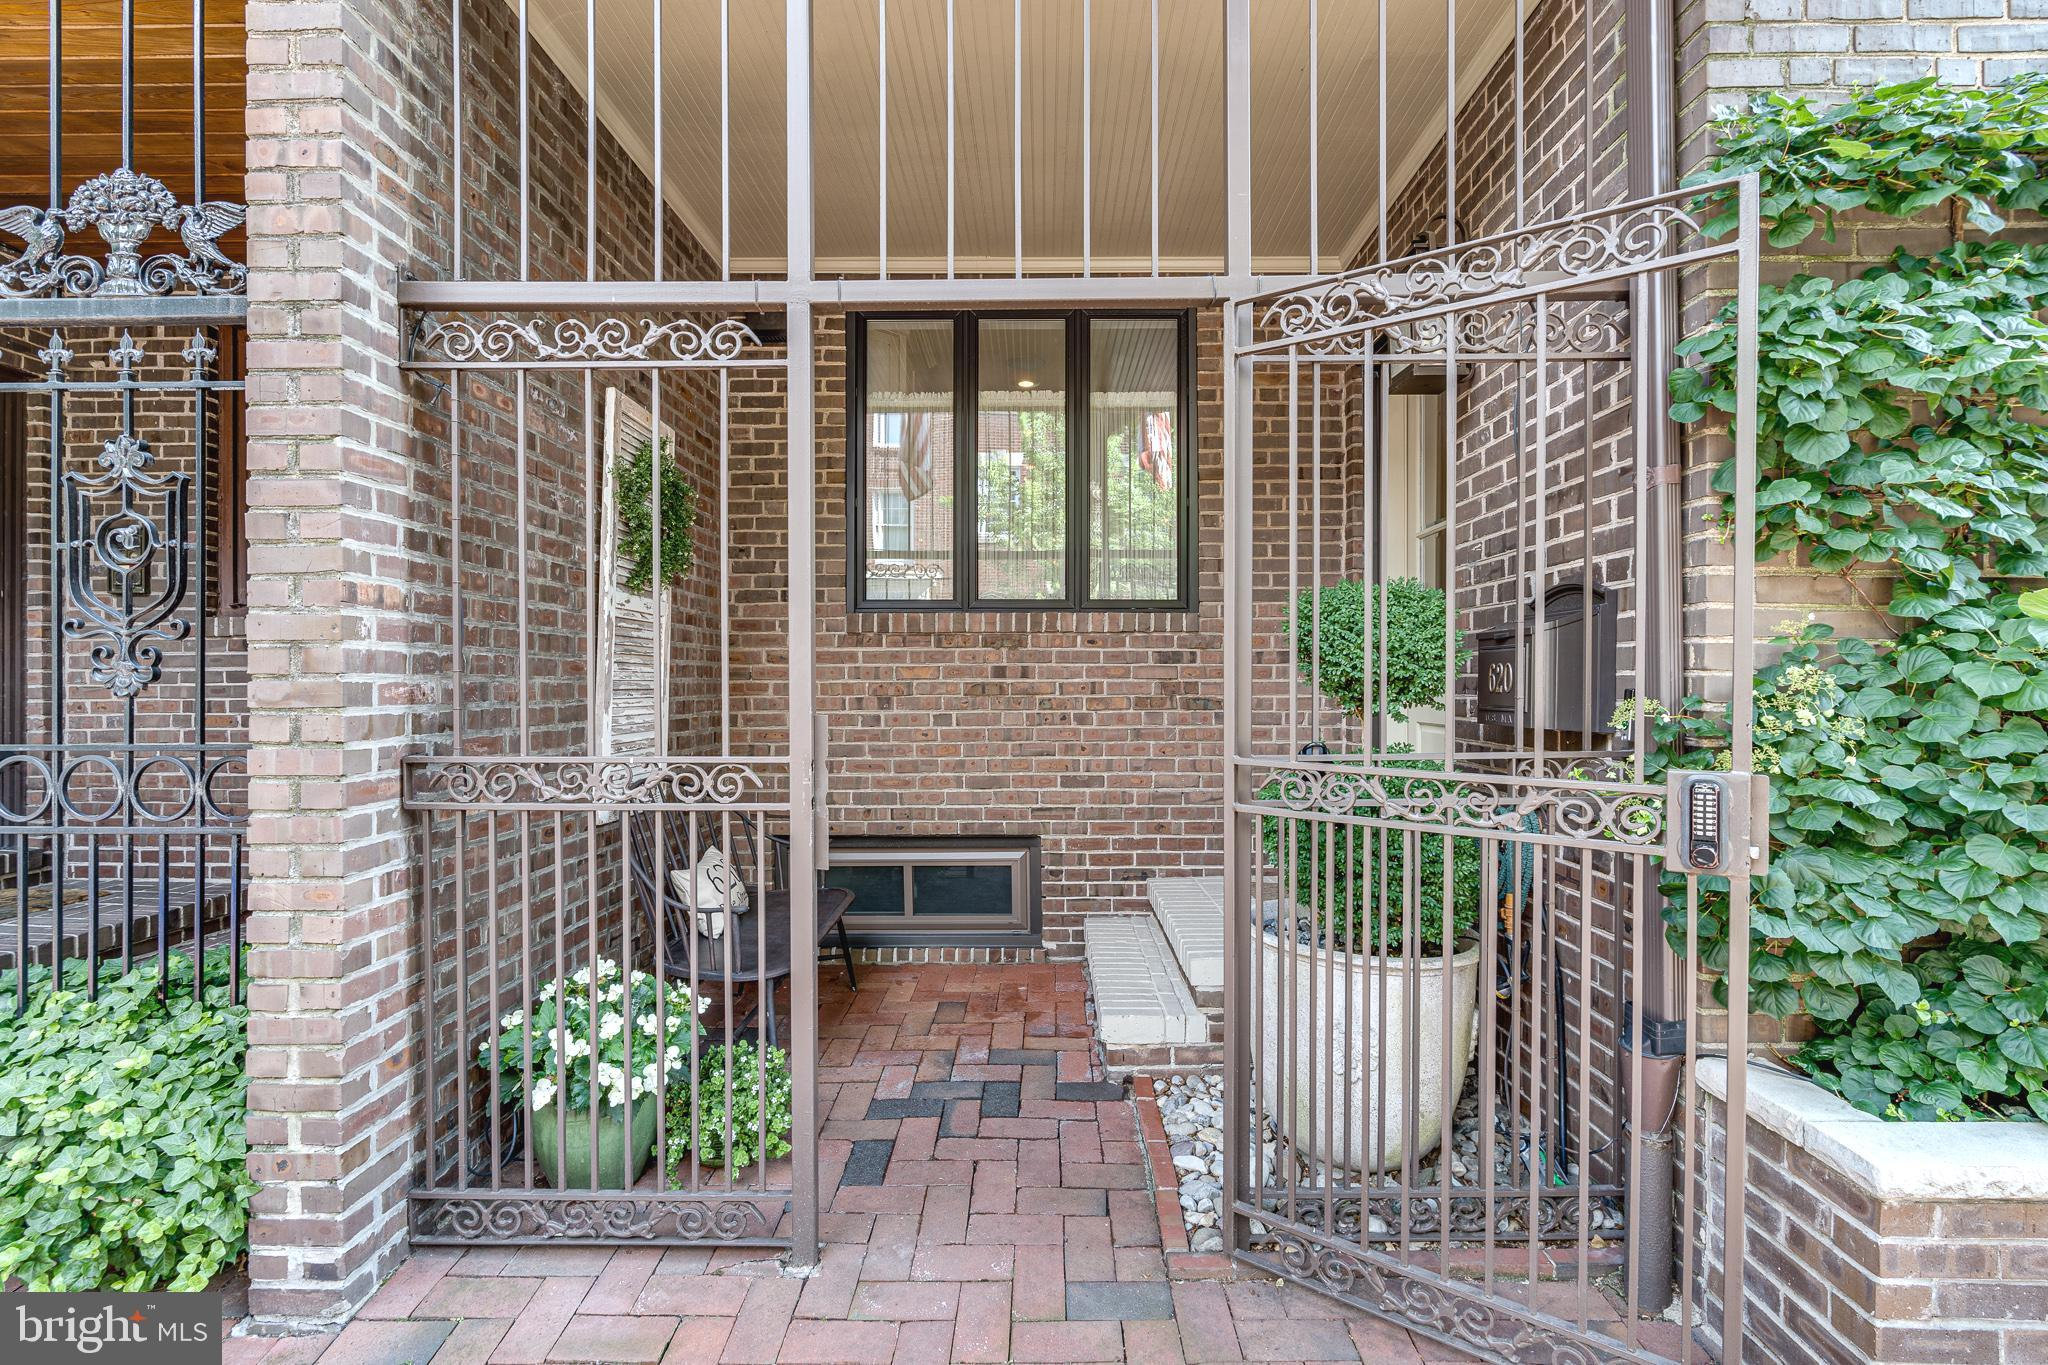 Nestled amongst the lush mature trees and historic red brick sidewalk on one of Society Hill's most idyllic blocks you'll find 620 Pine St. This 3 bedroom, 3.5 bathroom home was meticulously renovated in 2015 with an ideal blend of traditional style and modern features. Not only is this home located in a highly desirable neighborhood, it also offers highly sought-after amenities including multiple outdoor spaces, a 1-car deeded parking spot, office/flex space, and a finished basement. At the front of the home, a gated recessed patio acts as a buffer from the outside world. Inside, you're greeted by a two-story foyer, a coat closet, and a powder room. Beautiful hardwood floors guide you into the stunning Chef's kitchen. Adorned with quartz countertops, a tile backsplash, and custom inset cabinetry enhanced by a panel-covered Sub-Zero refrigerator, a Bosch double range, and Newport brass fixtures, this kitchen looks like it belongs in a design magazine! A massive island with seating for 3+ and built-in speakers adds to the functionality of the space. Past the adjoining dining area, you'll step down into the sun-drenched living room where shiplap walls, brick floors, and a gas fireplace create a warm and inviting space. From the living room, 8' glass French doors open to the secluded back patio. Surrounded by serene foliage, this private oasis is perfect for relaxing on cool spring days and entertaining on warm summer nights. Back inside the home, the large finished basement with tile floors, high ceilings, and recessed lights, could be configured as a den, theater room, gym, or playroom. A separate section of the basement houses the laundry room, mechanical closet, and an area for extra storage. The home's second level is dedicated to the primary suite. The large, carpeted bedroom is framed by crown molding and filled with natural light from an oversized window. The custom walk-in closet is easily configurable to fit your wardrobe needs. The luxurious ensuite bath has